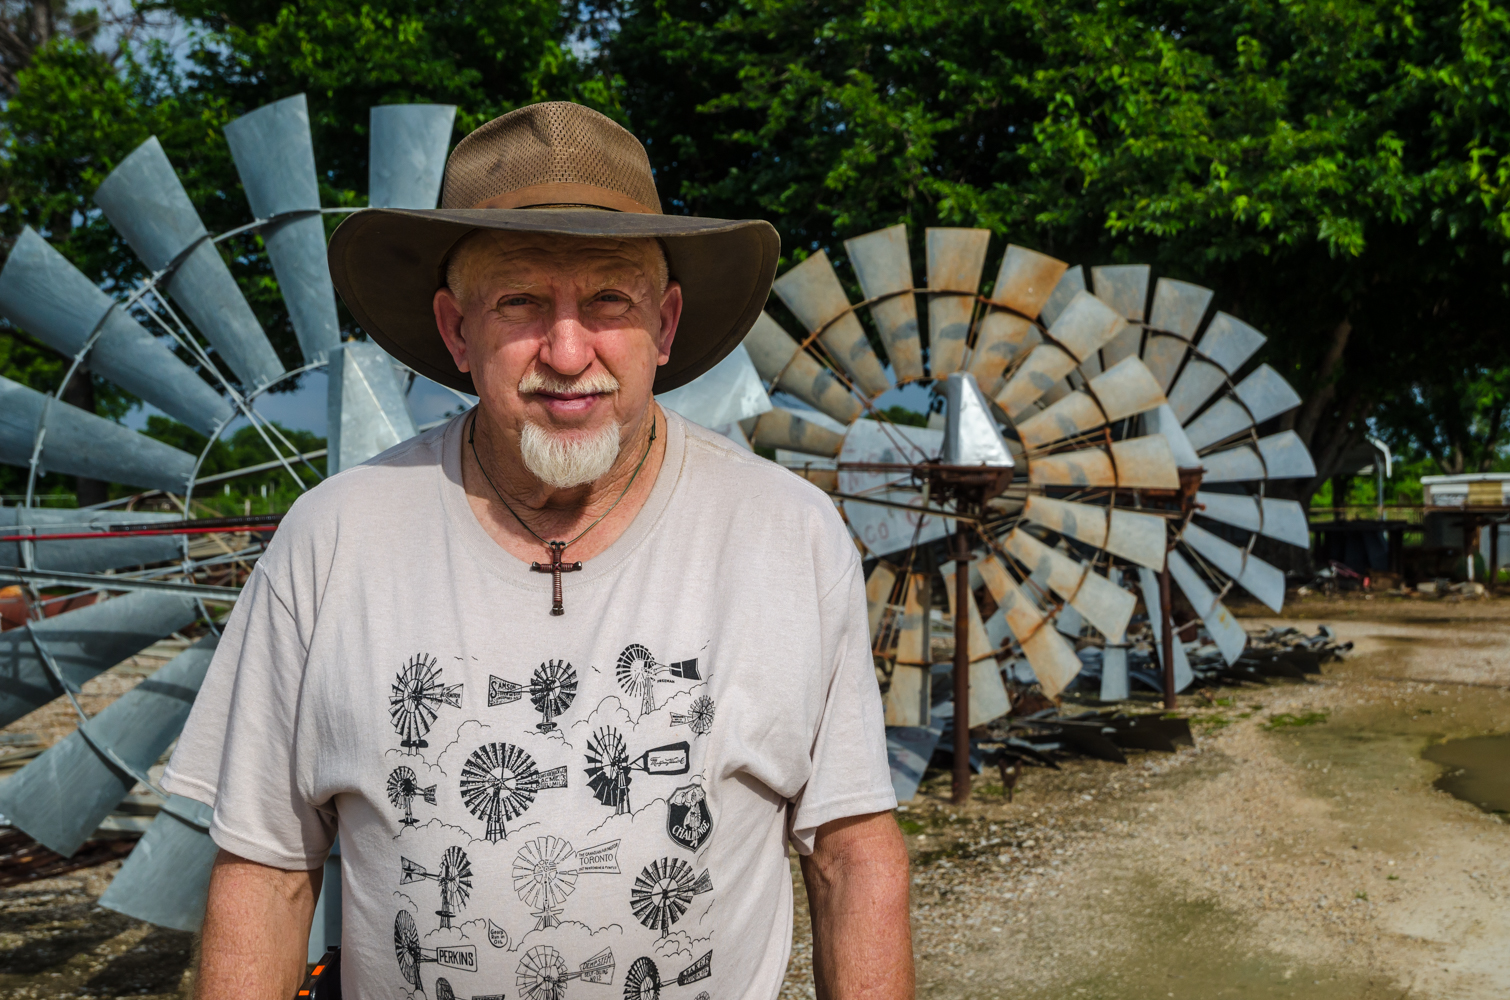 Cliff Conway, Welder and Wind Mill Refurbisher, Comanche, TexasCliff Conway of Conway Welding Service in Comanche, Texas, repairs, services, and provides parts for windmills.